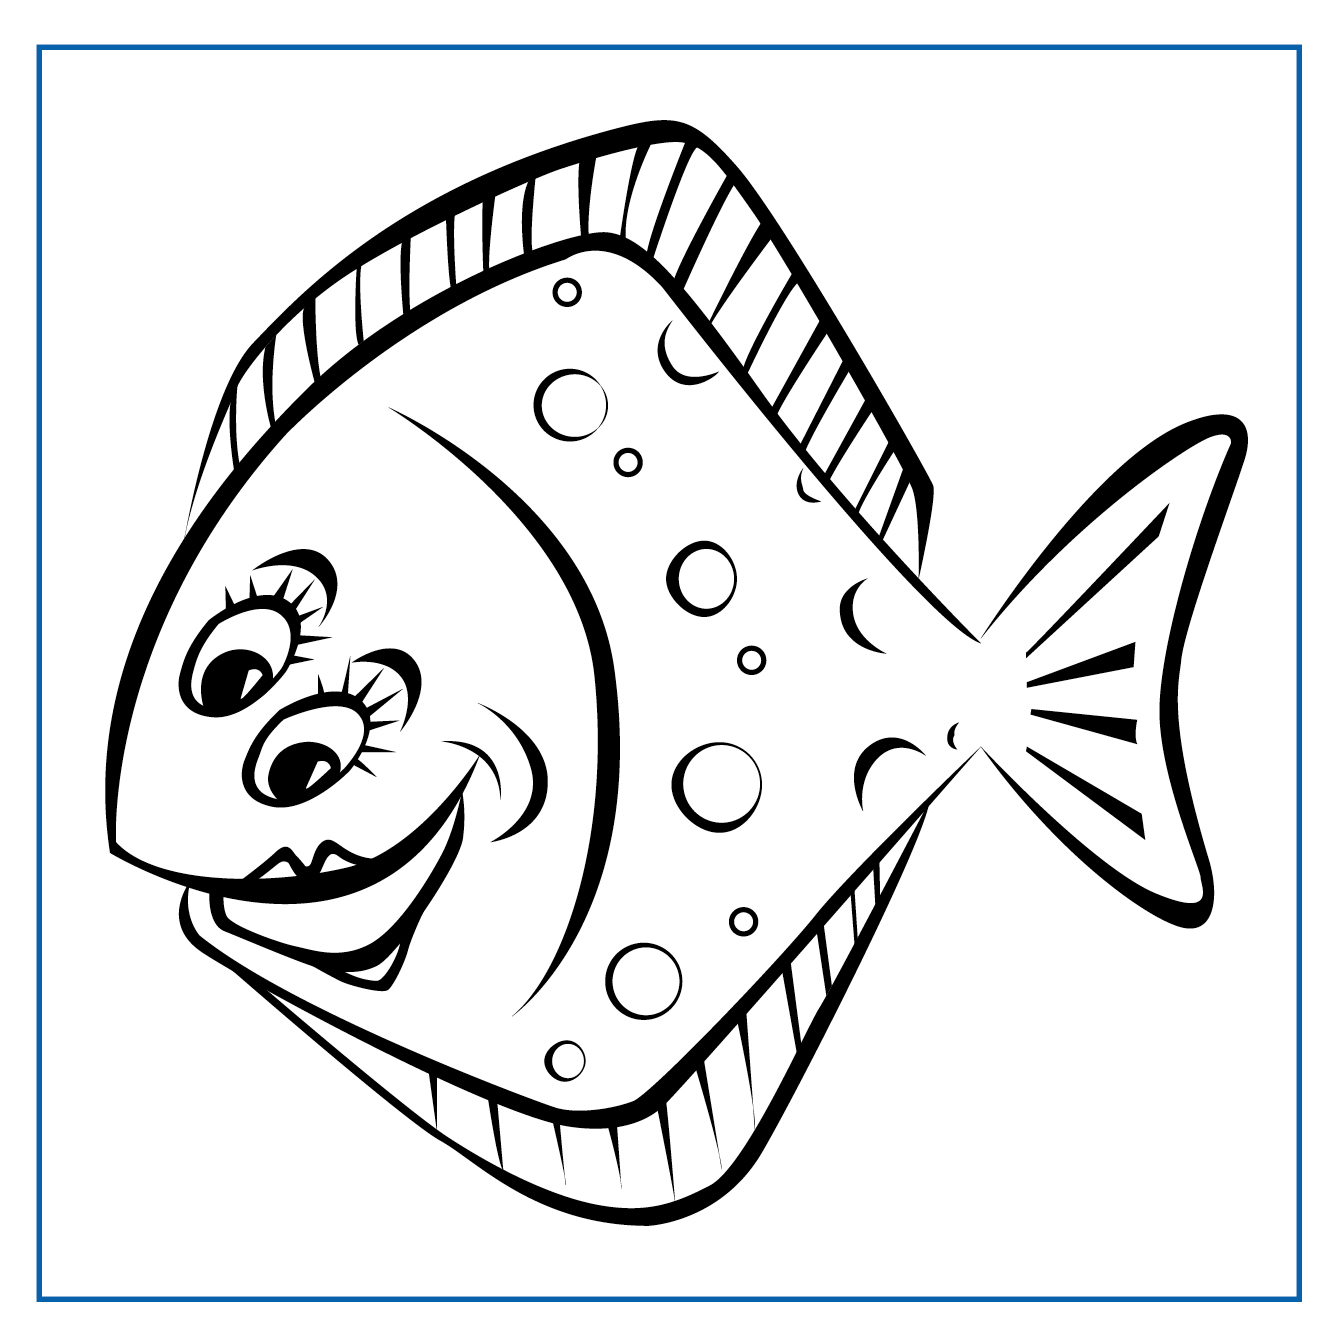 Penny Plaice - Click on my picture to print me out and colour me in